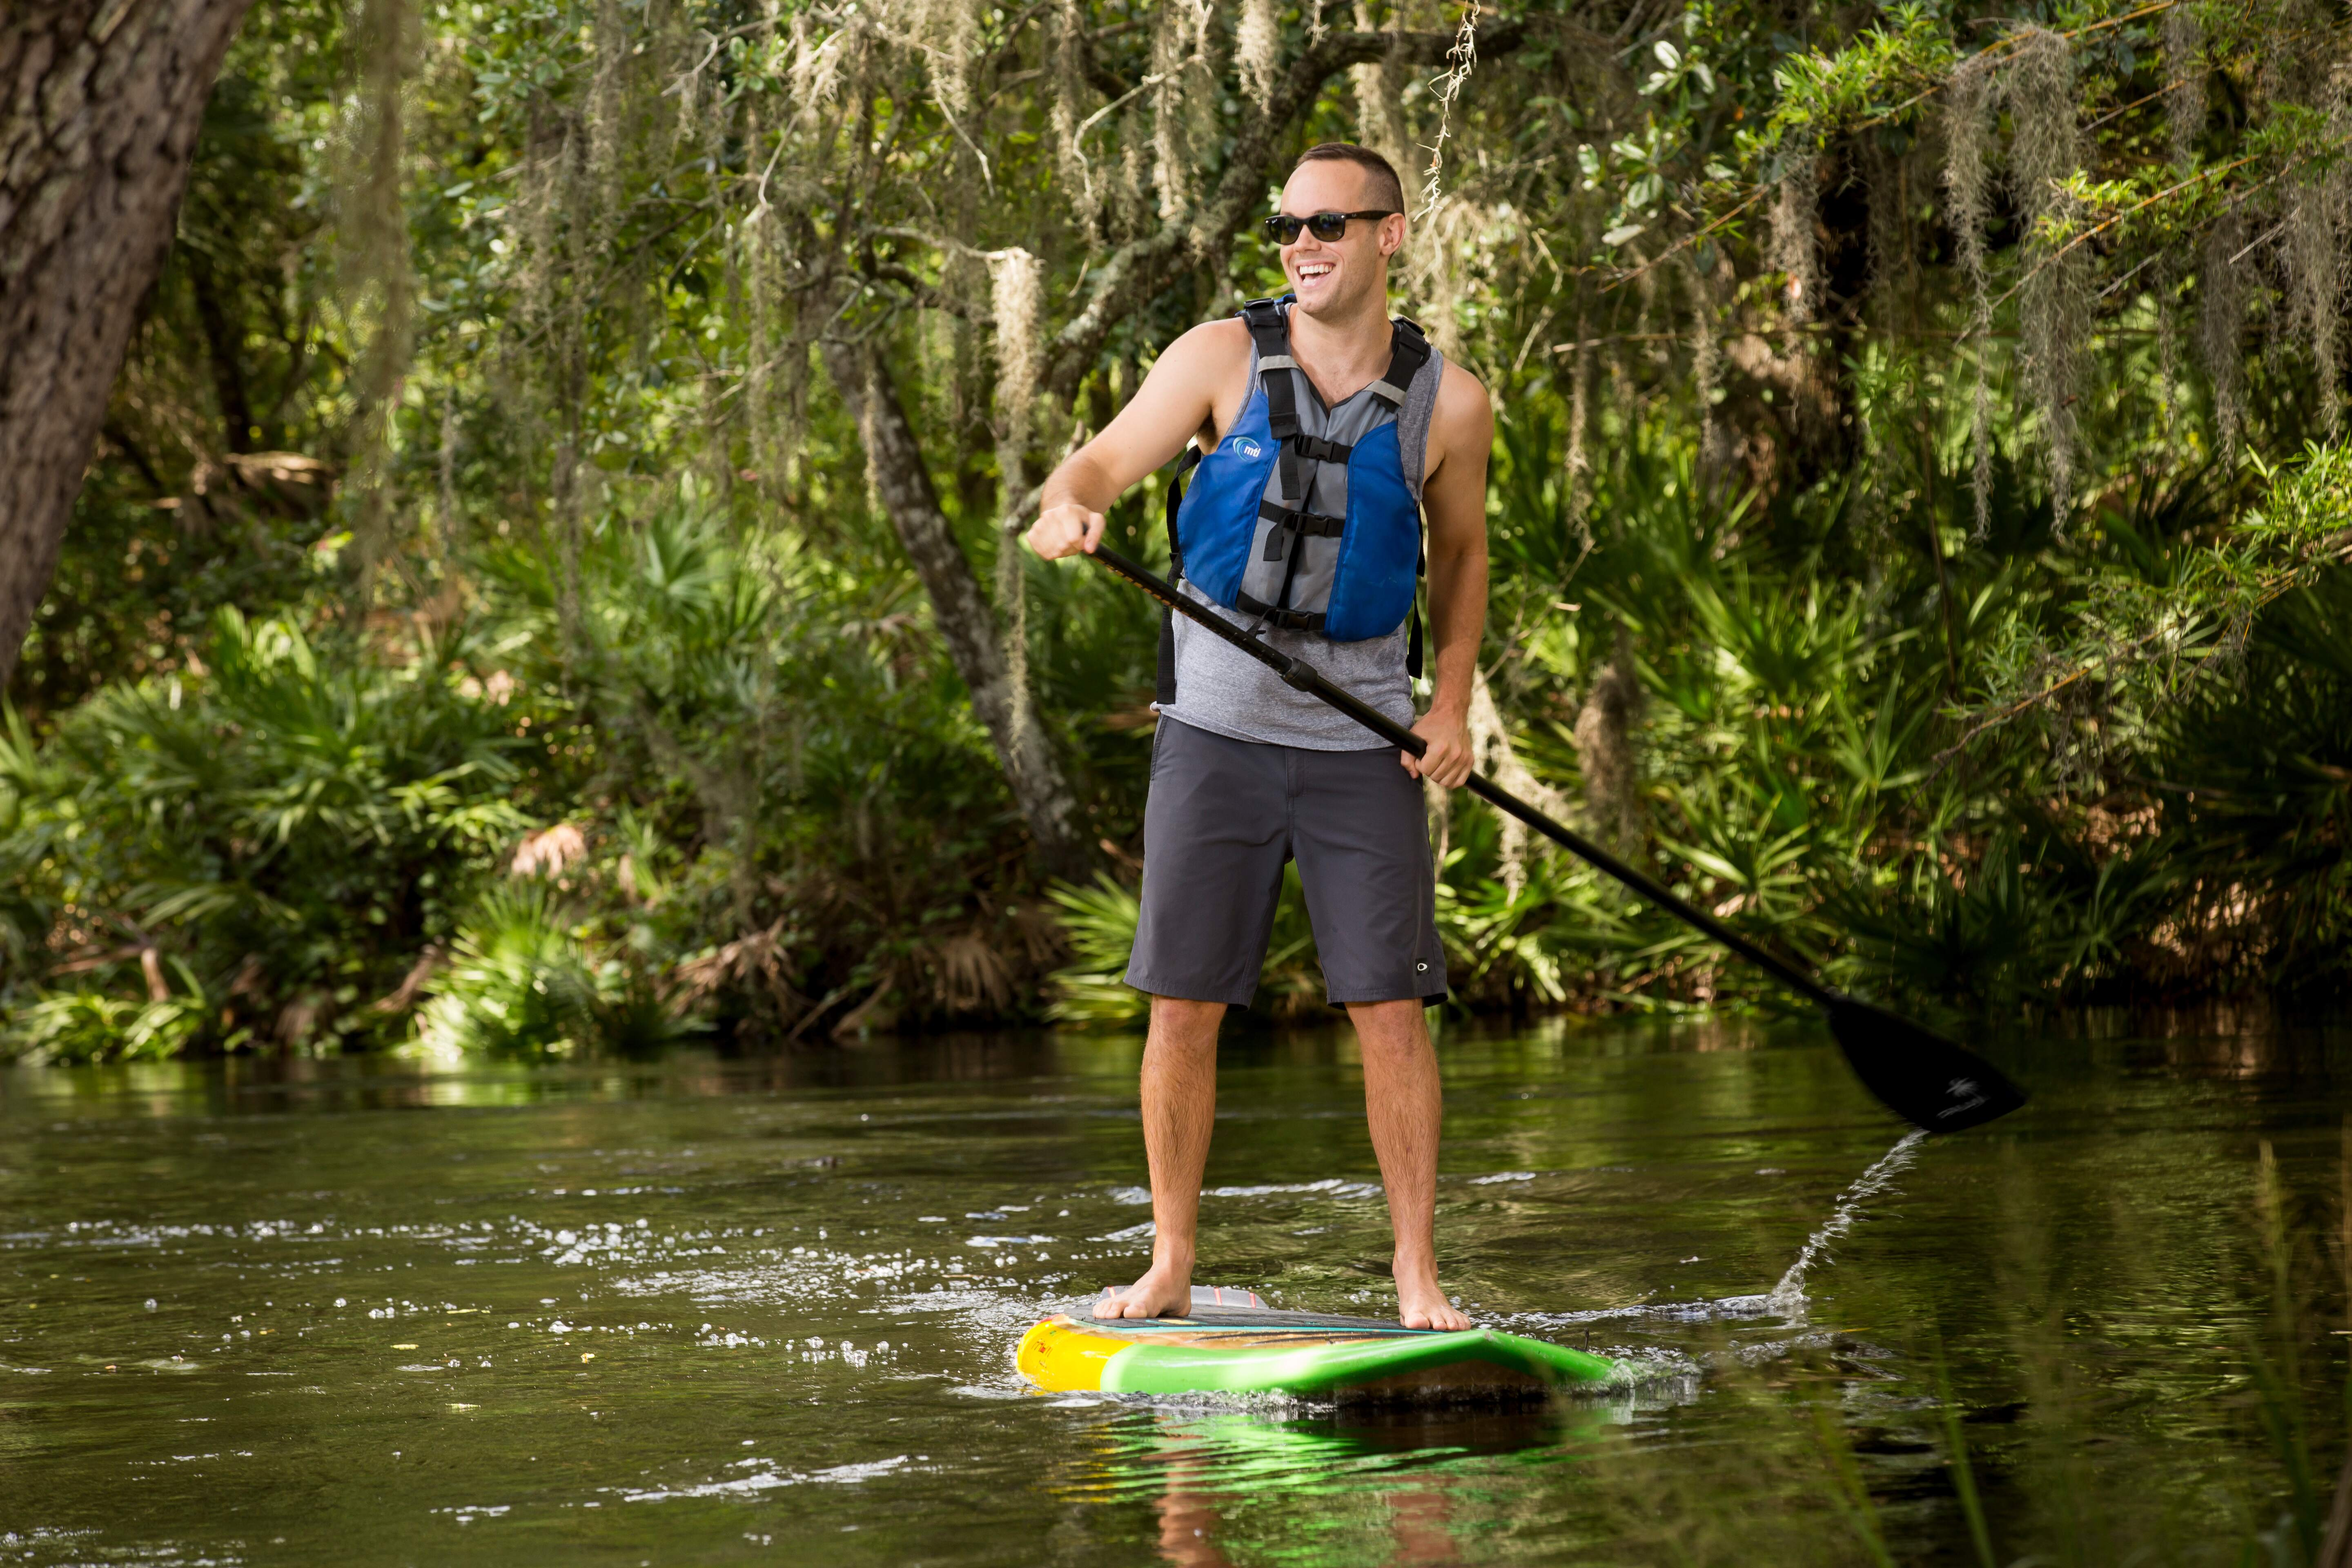 Stand up paddleboarding at Shingle Creek in Kissimmee, Florida.